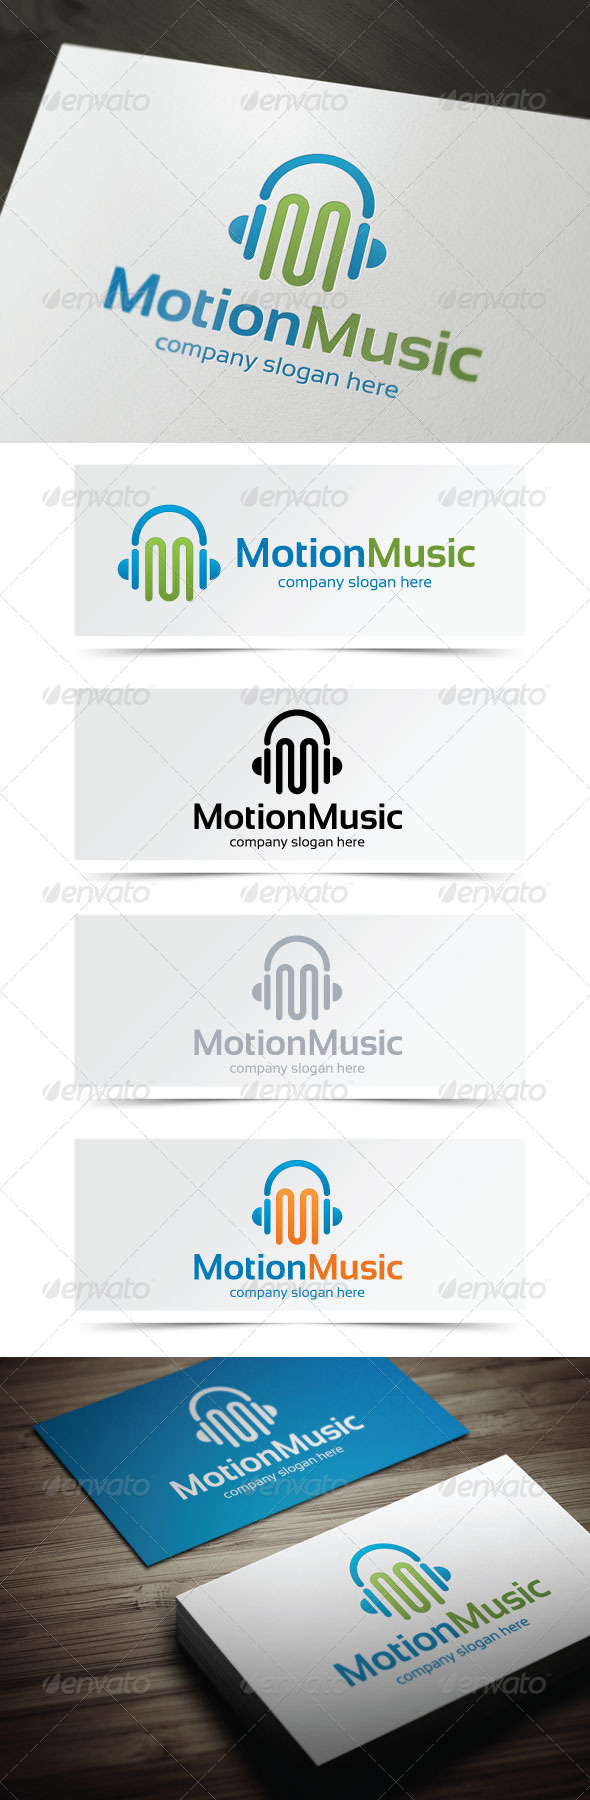 GraphicRiver Motion Music 5080886